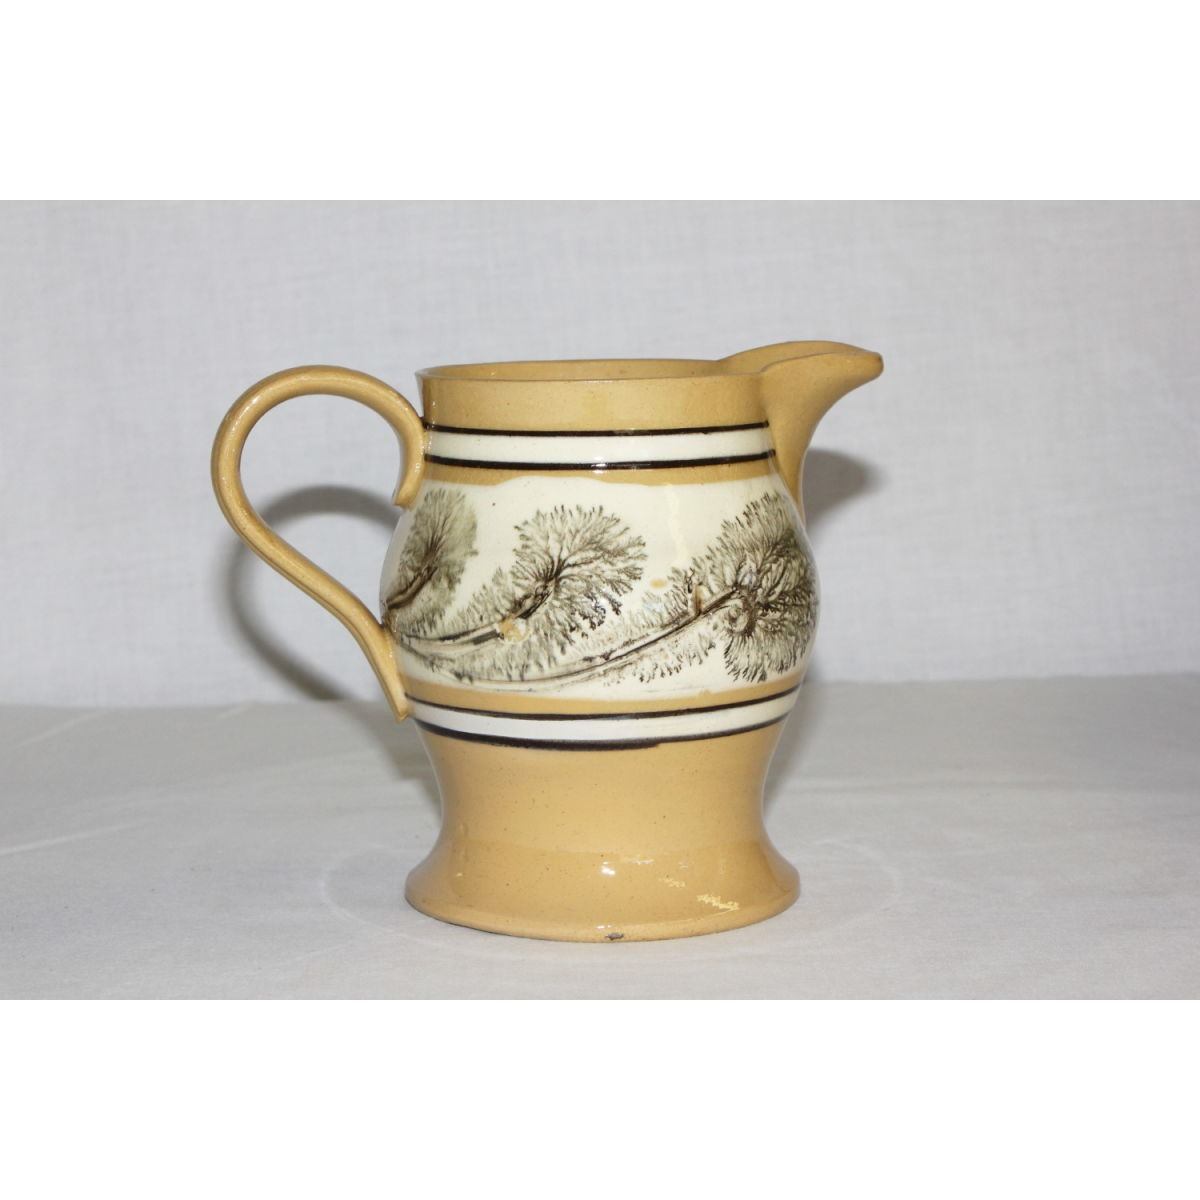 Highly Unusual Black Green Seaweed-Decorated Yellow Ware Creamer